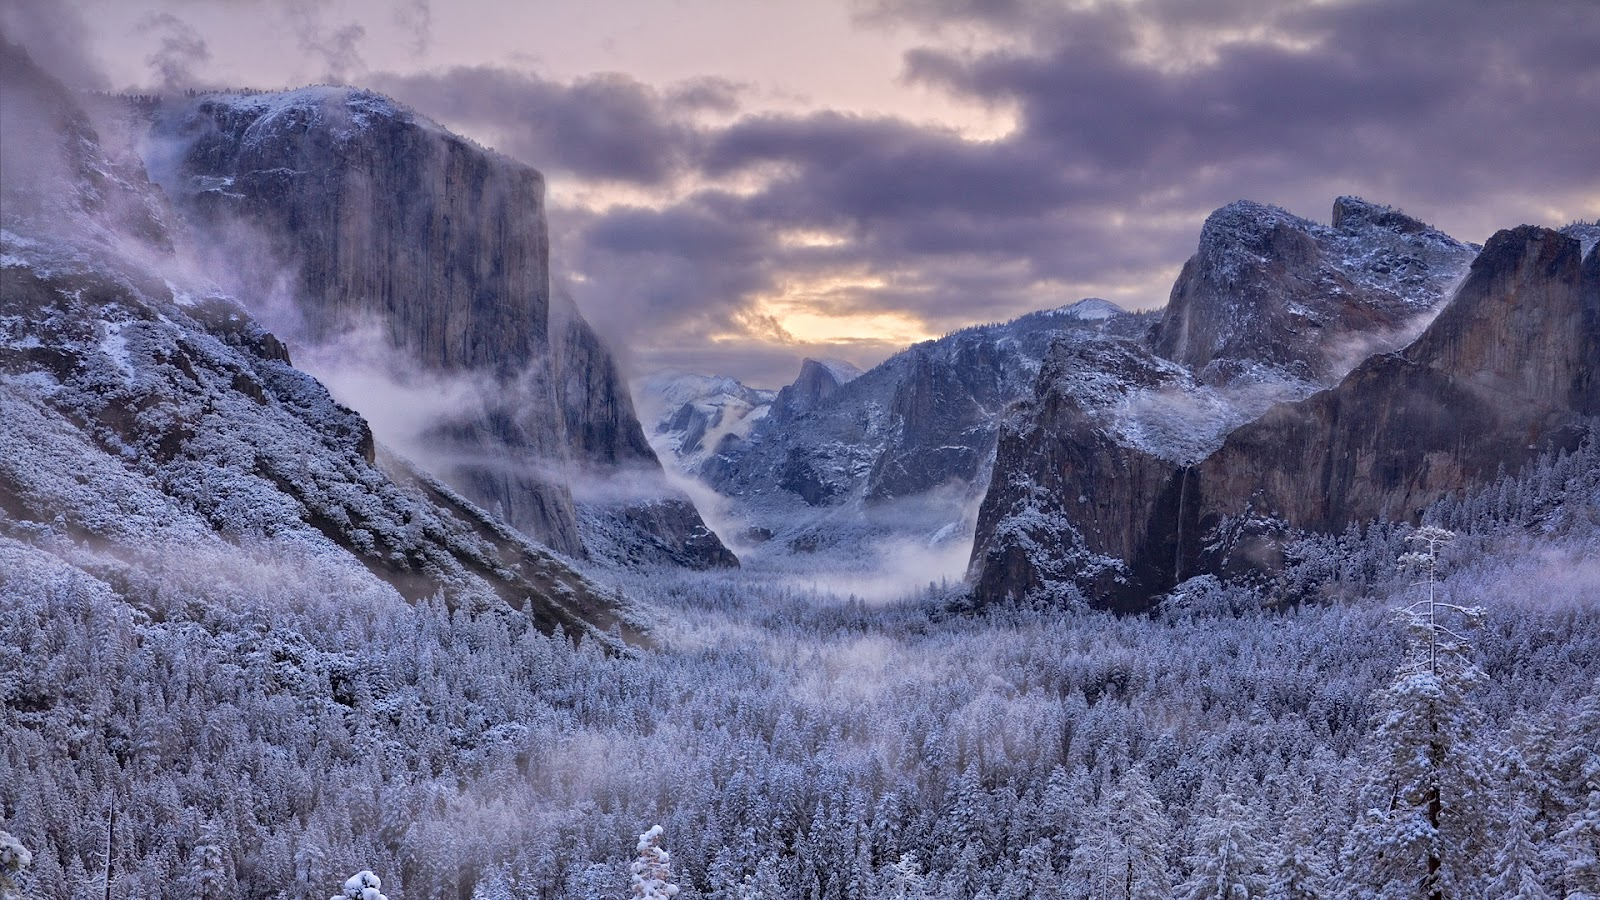 http://2.bp.blogspot.com/-3i9yEa75DQs/UAfTseBIi3I/AAAAAAAADLY/mksl-ncBKLQ/s1600/Sierra+Snowstorm+at+Dawn,+Yosemite+Valley,+California.jpg